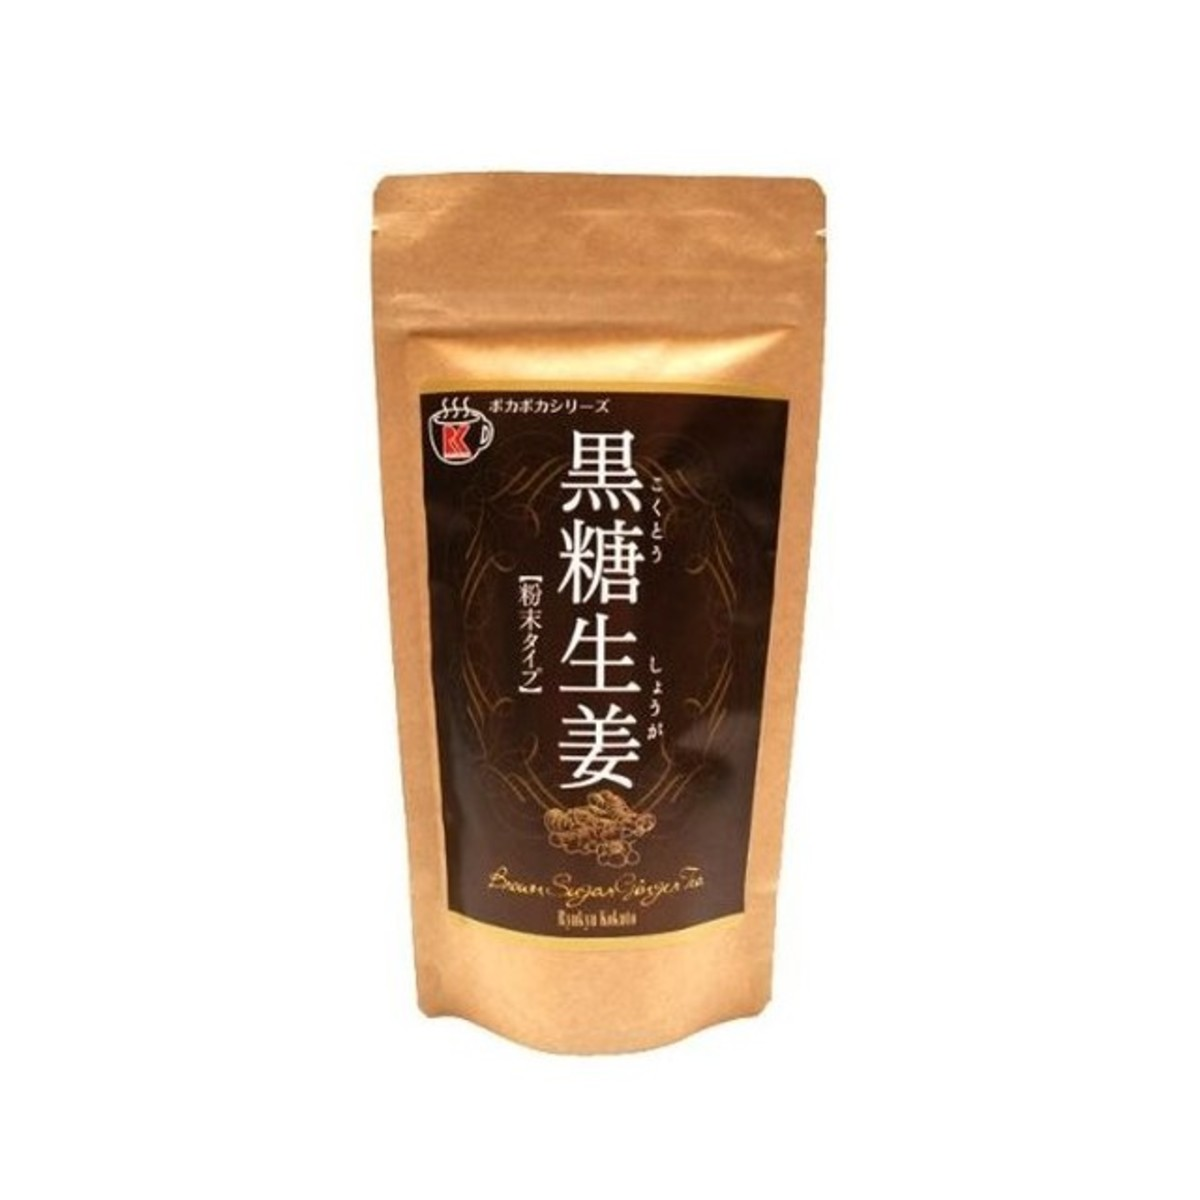 Ginger & Black Sugar Mix 200g